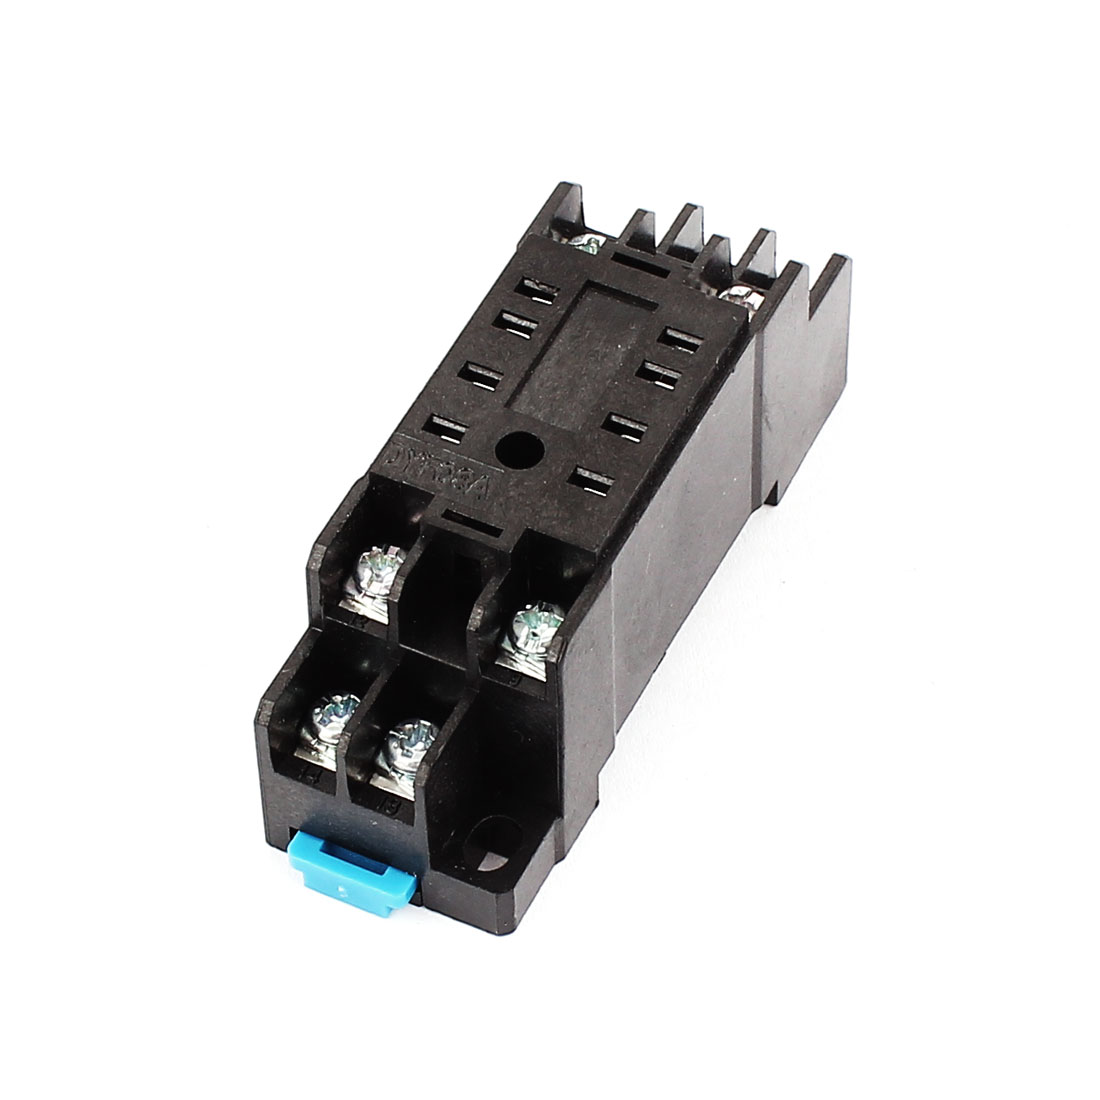 DYF08A 8 Pins Screw Power Relay Socket Base Stand Holder for HH52P